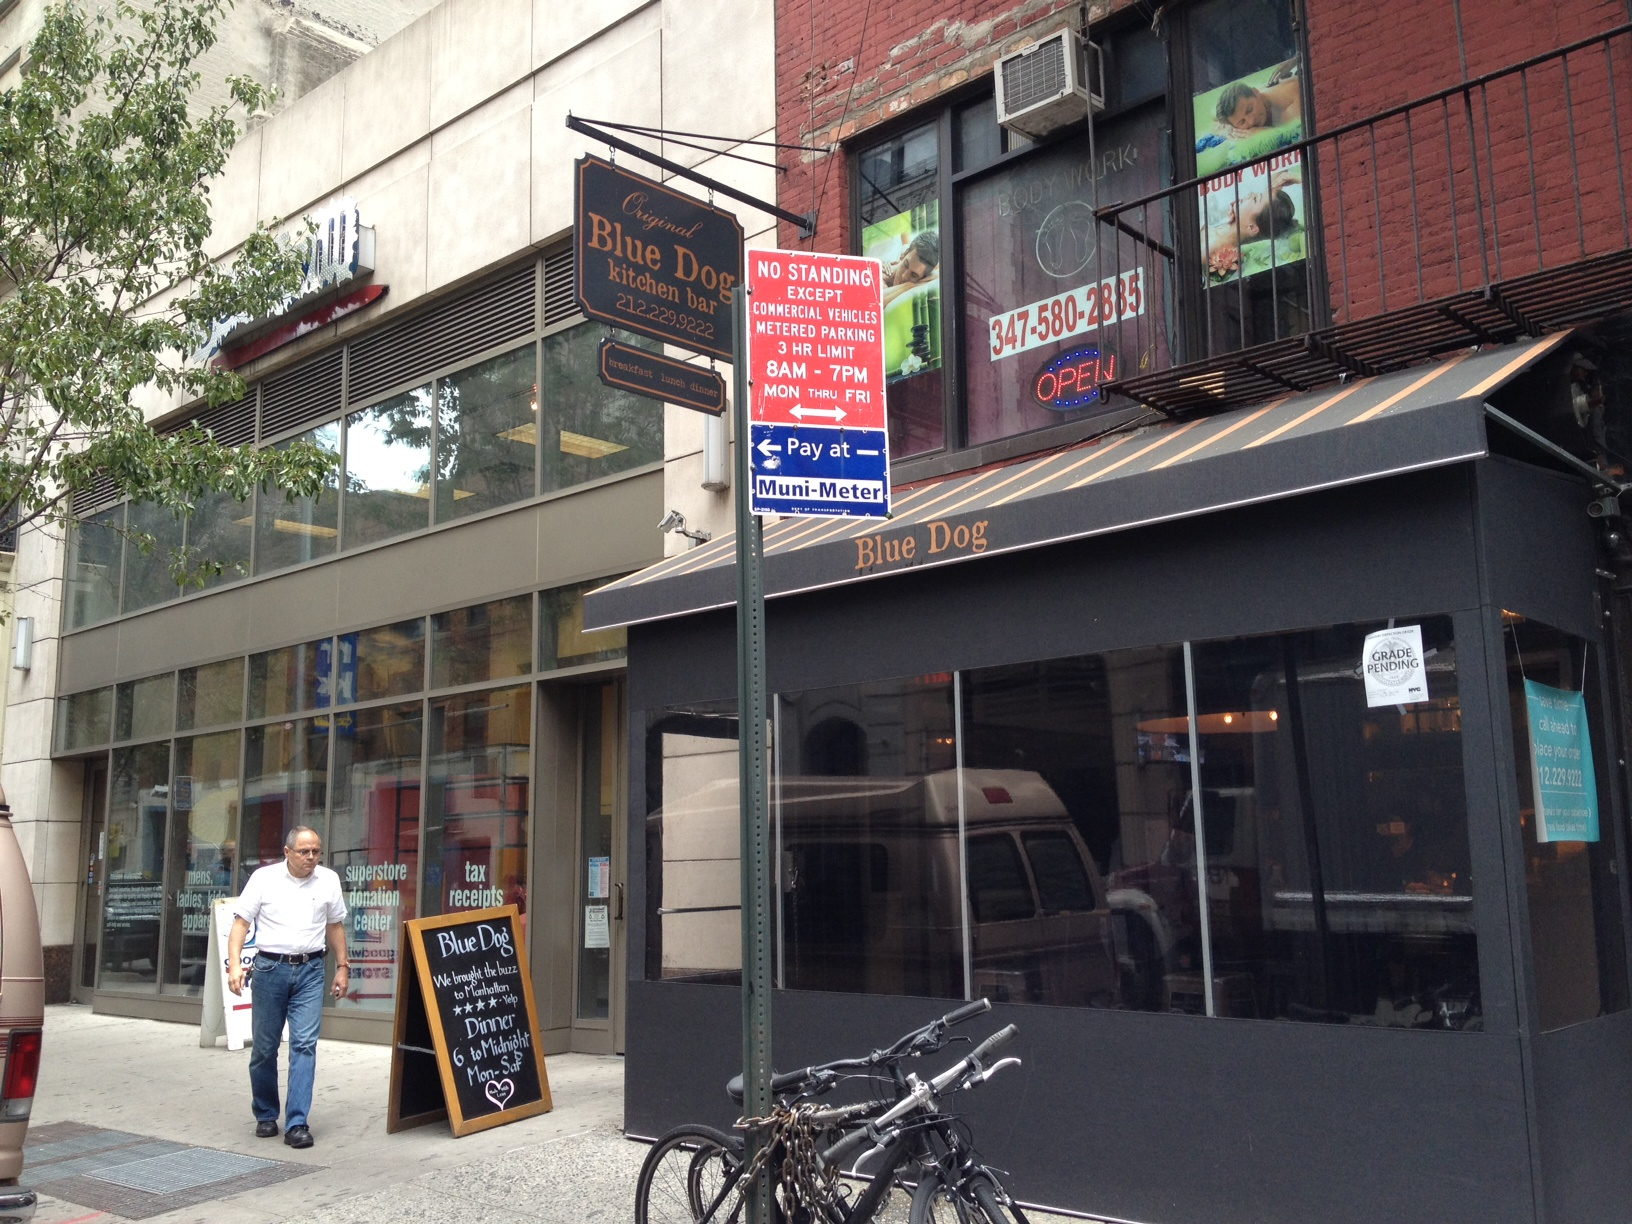 Flatiron Lunch Blue Dog Has Big Options And Flavors In A